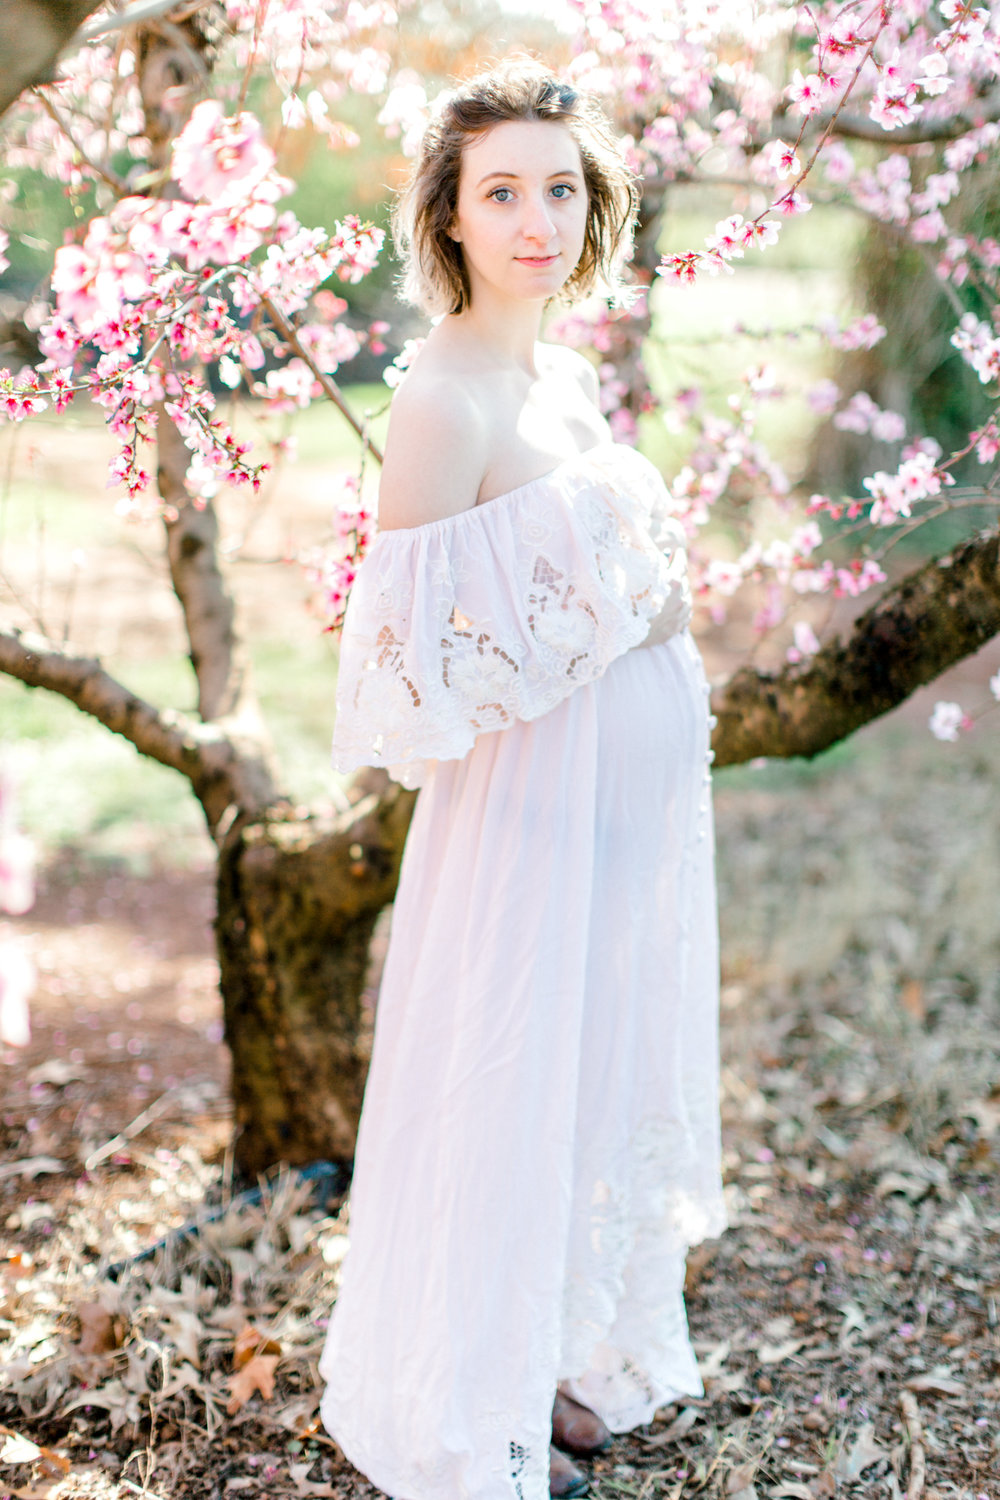 four corners photography peach blossom mini sessions peach blossom maternity session (21 of 25).jpg